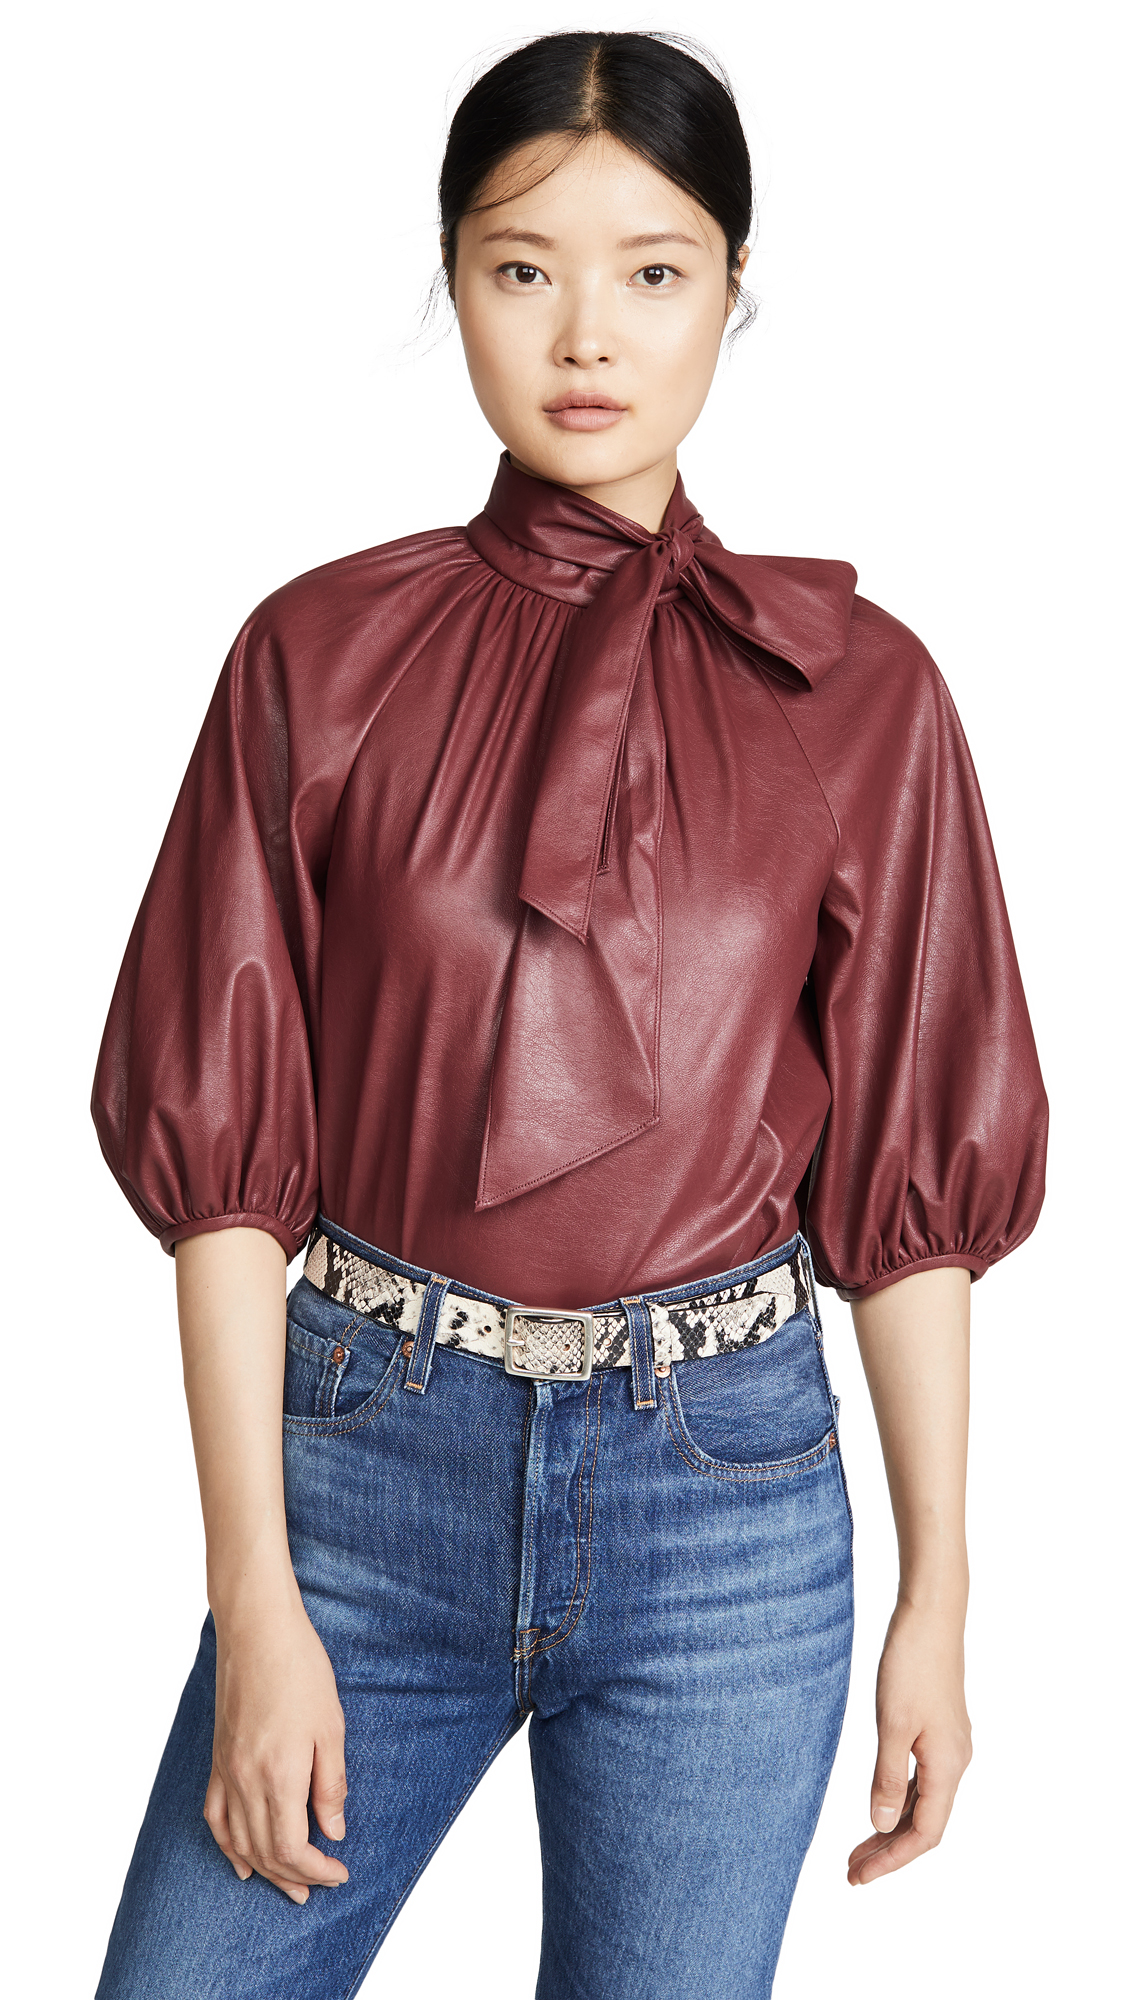 Rebecca Taylor Vegan Leather Top - 40% Off Sale